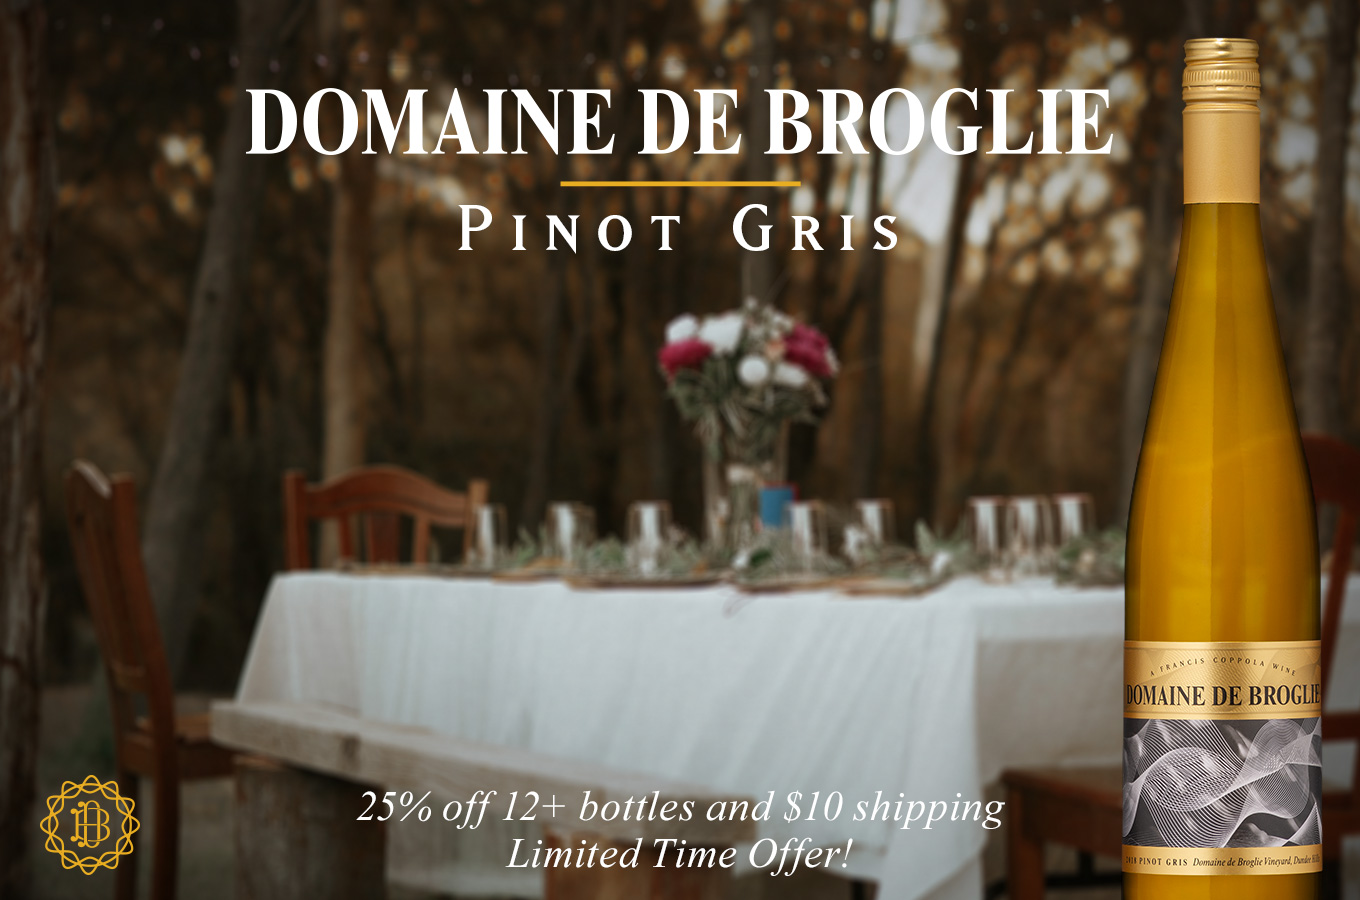 Domaine de Broglie Pinot Gris, 25% off 12+ bottles and $10 shipping. Limited Time Offer!